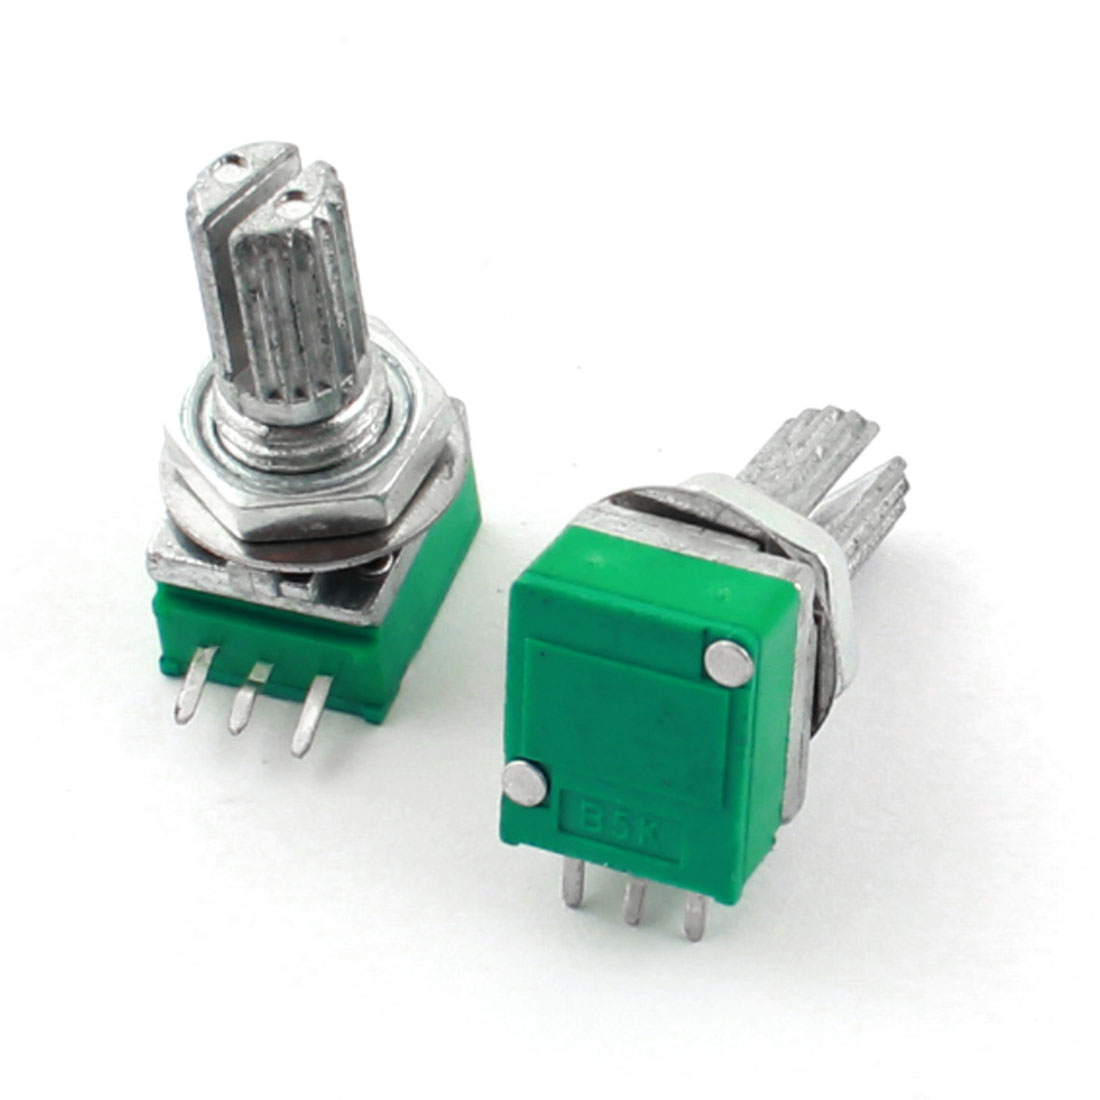 2Pcs 5K Ohm 7mm Dia Thread 6mm Knurled Shaft Linear Type Through Hole Mount Top Rotary Adjustable Taper Potentiometer